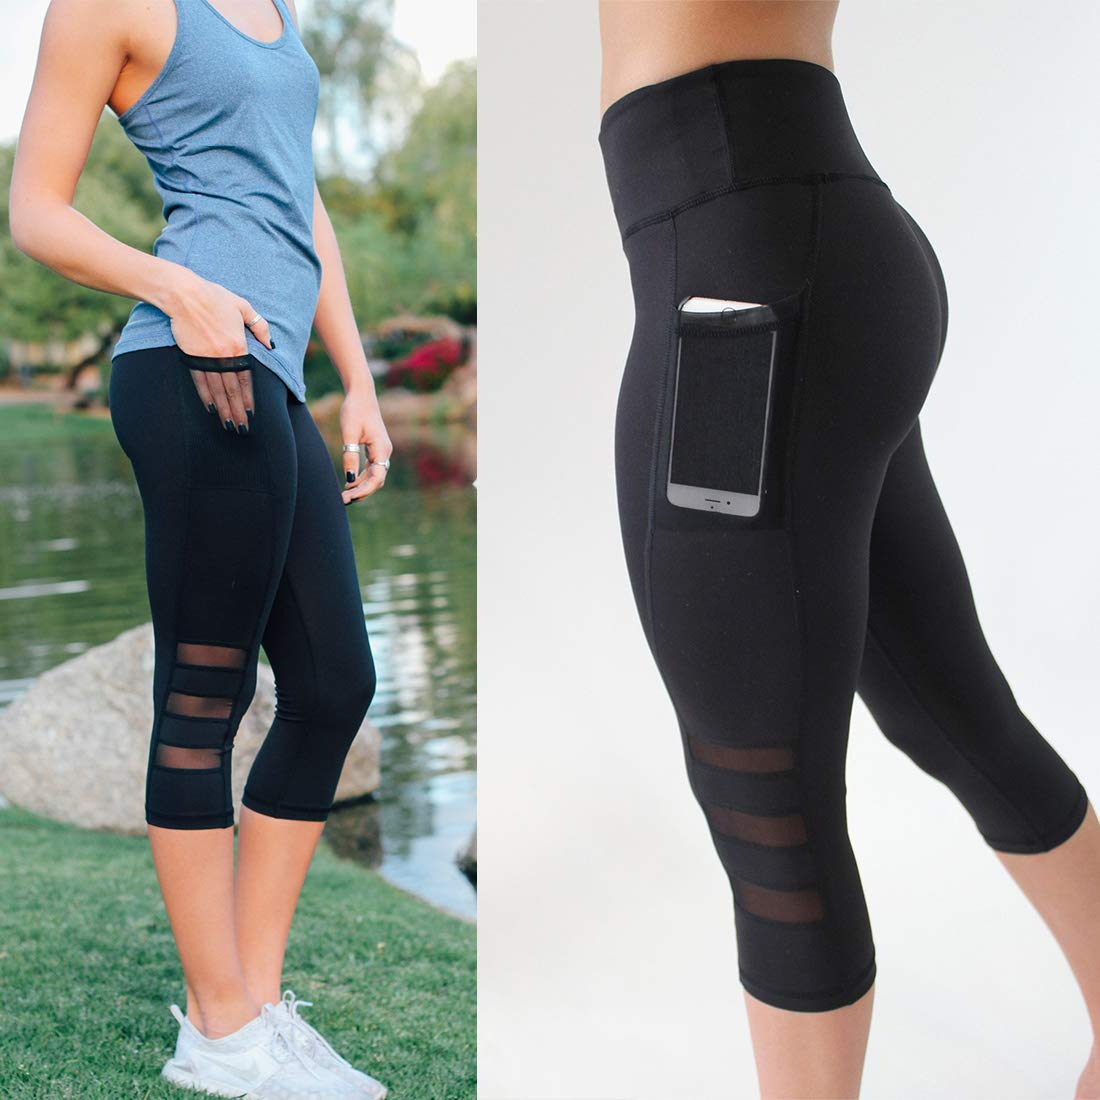 High Waist Cropped Leggings with Pockets for Women Black Workout Mesh Capri Yoga Pants Gym Tights